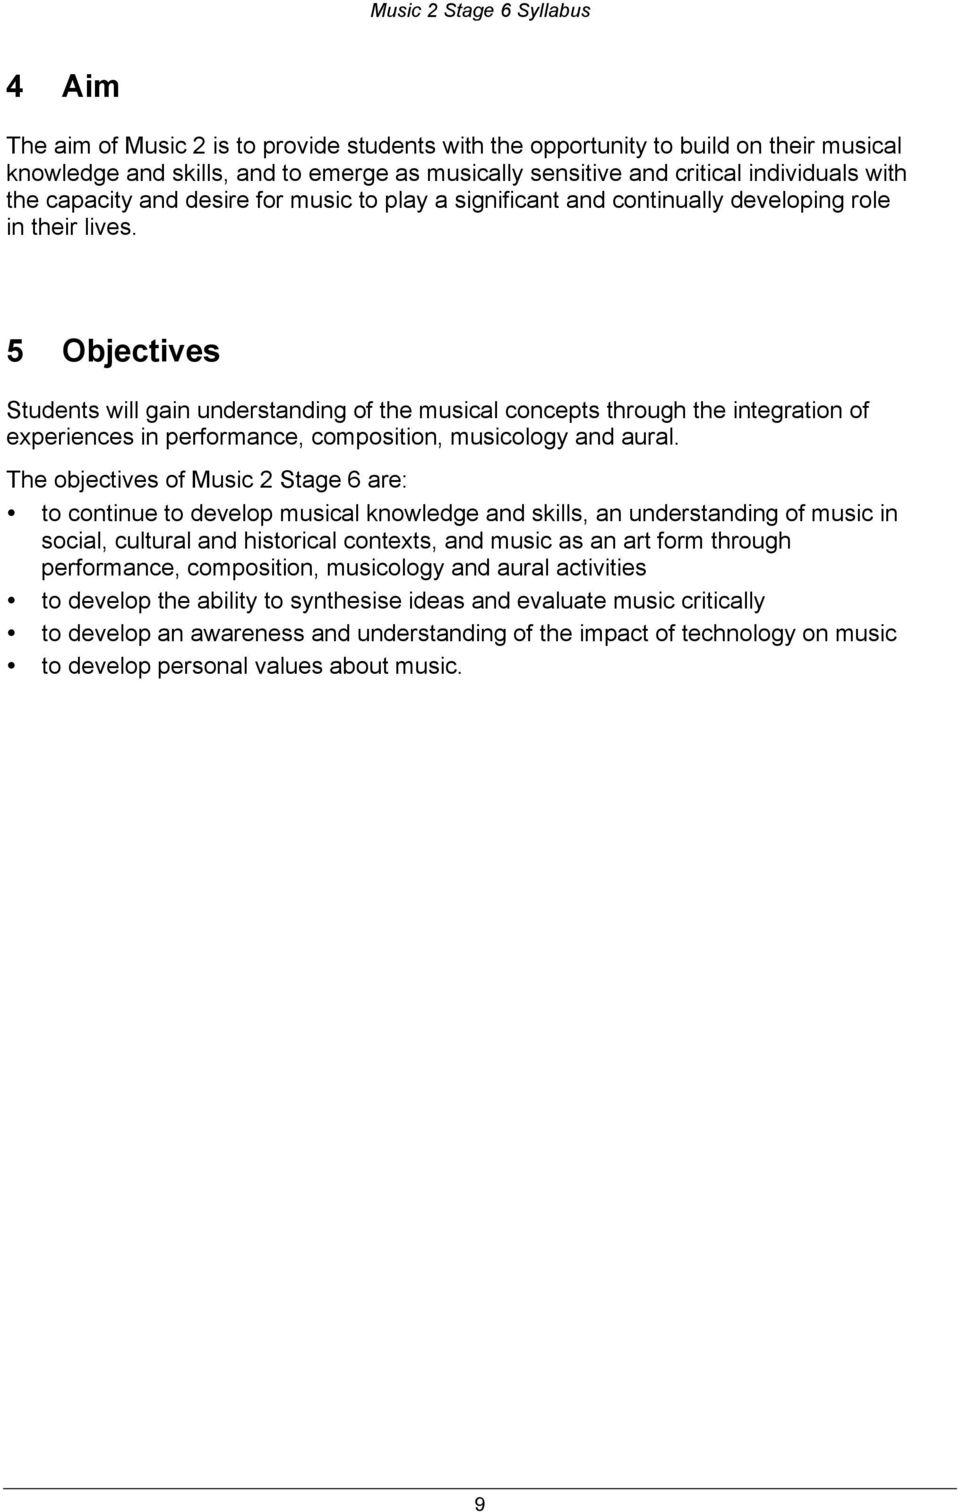 5 Objectives Students will gain understanding of the musical concepts through the integration of experiences in performance, composition, musicology and aural.